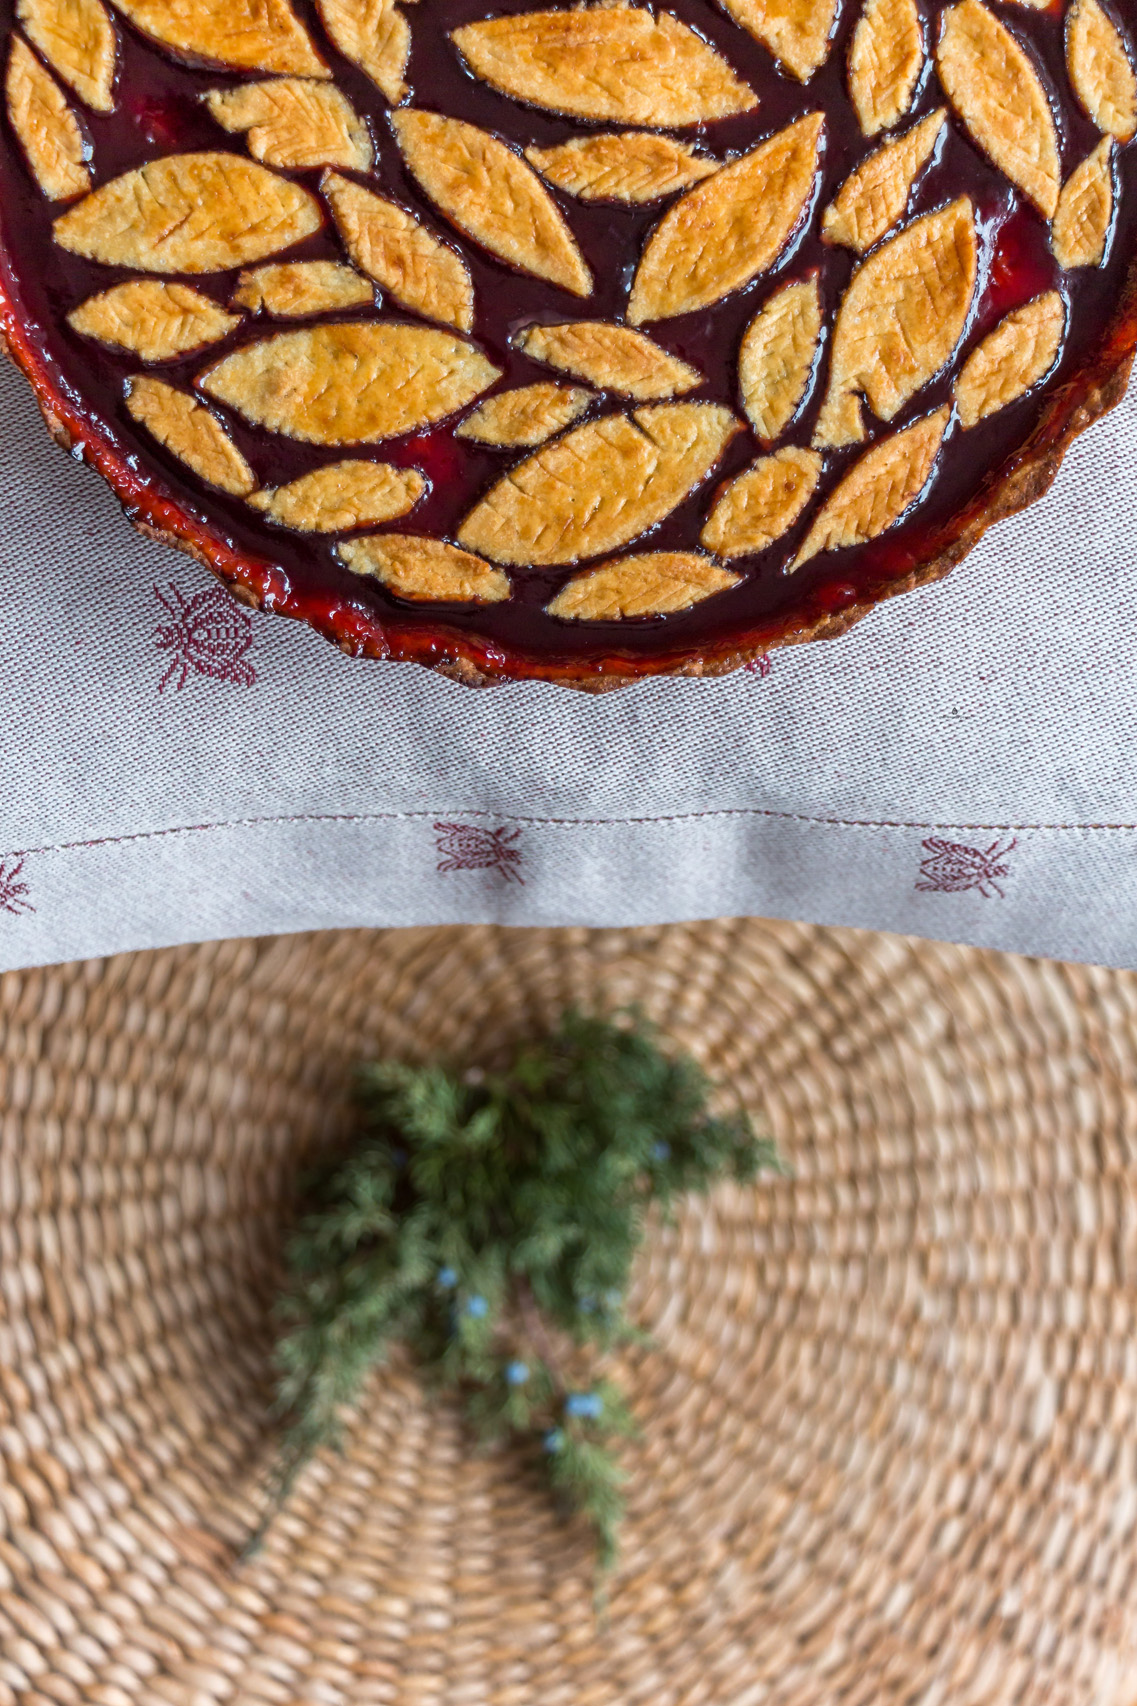 My take on Crostata di marmellata for mom's birthday